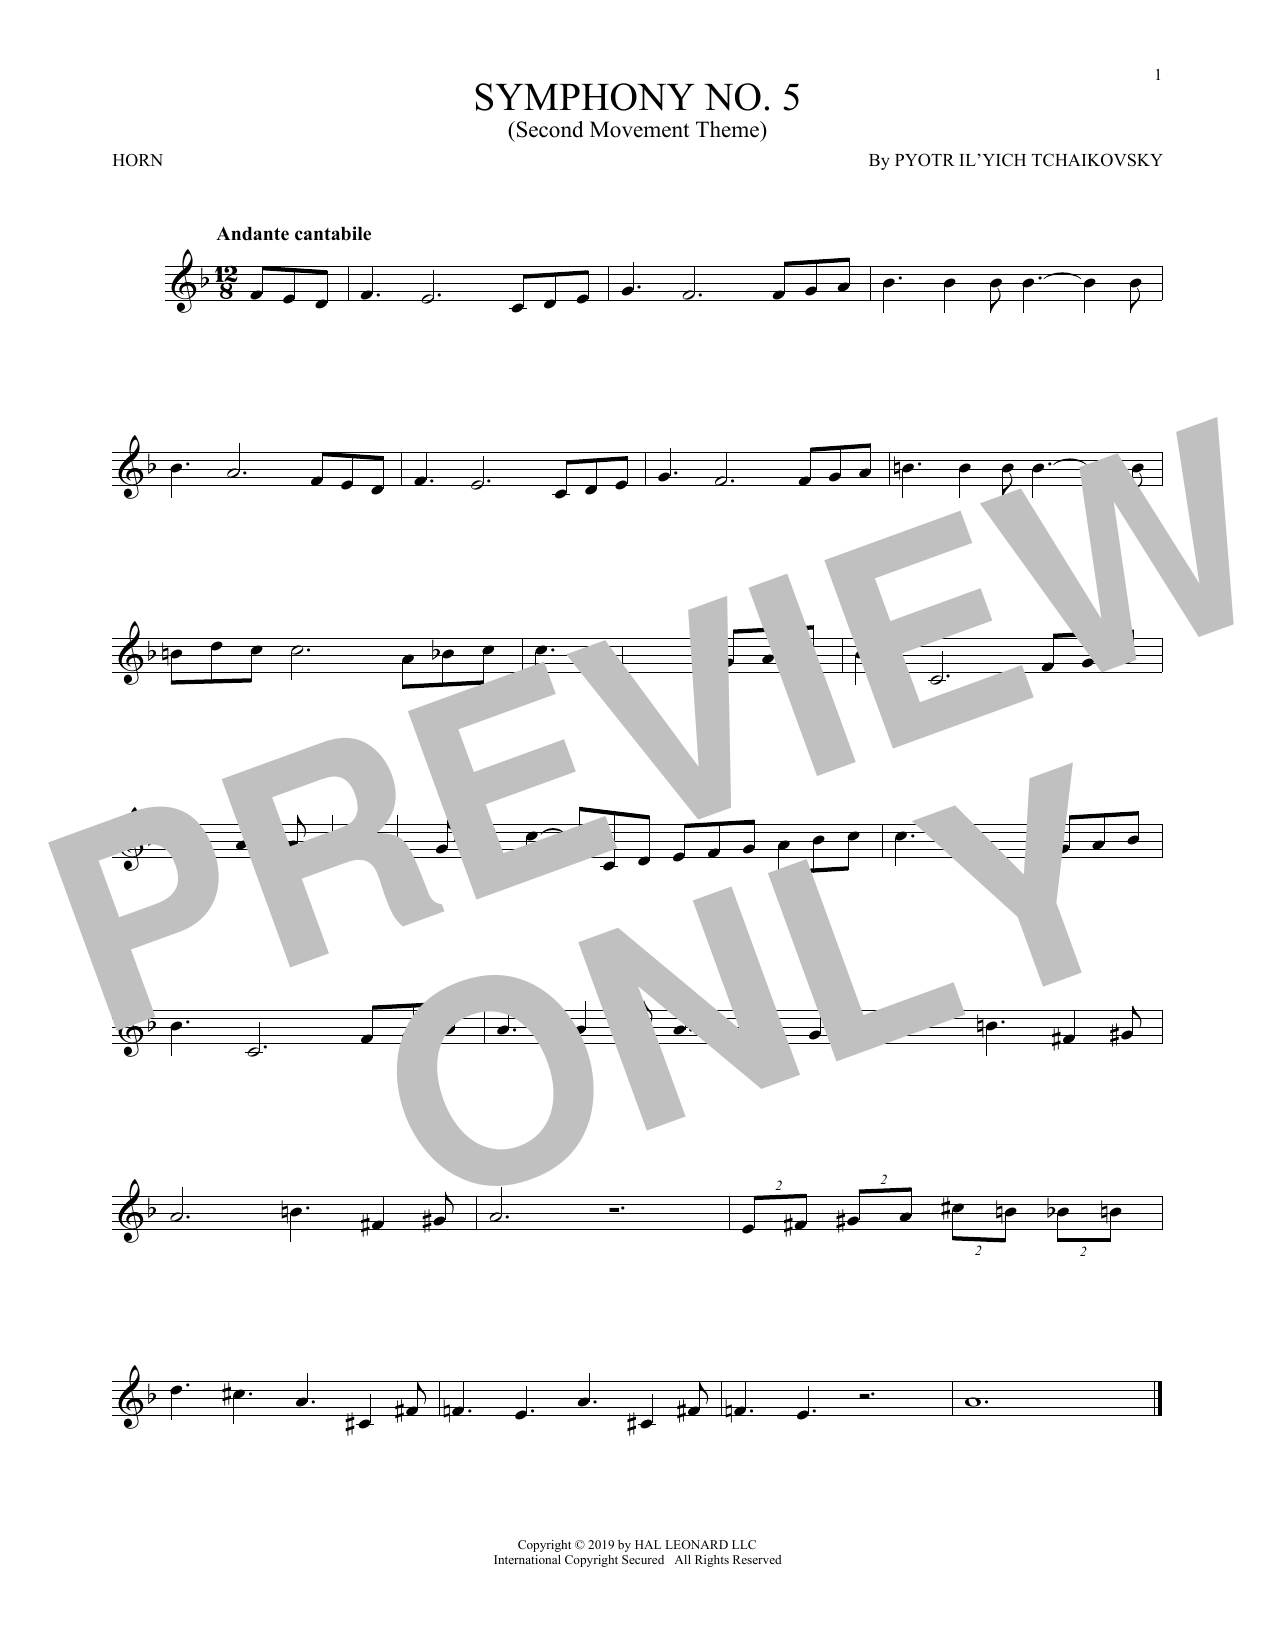 Pyotr Ilyich Tchaikovsky Symphony No.5 (2nd Movement: Andante) sheet music notes and chords. Download Printable PDF.